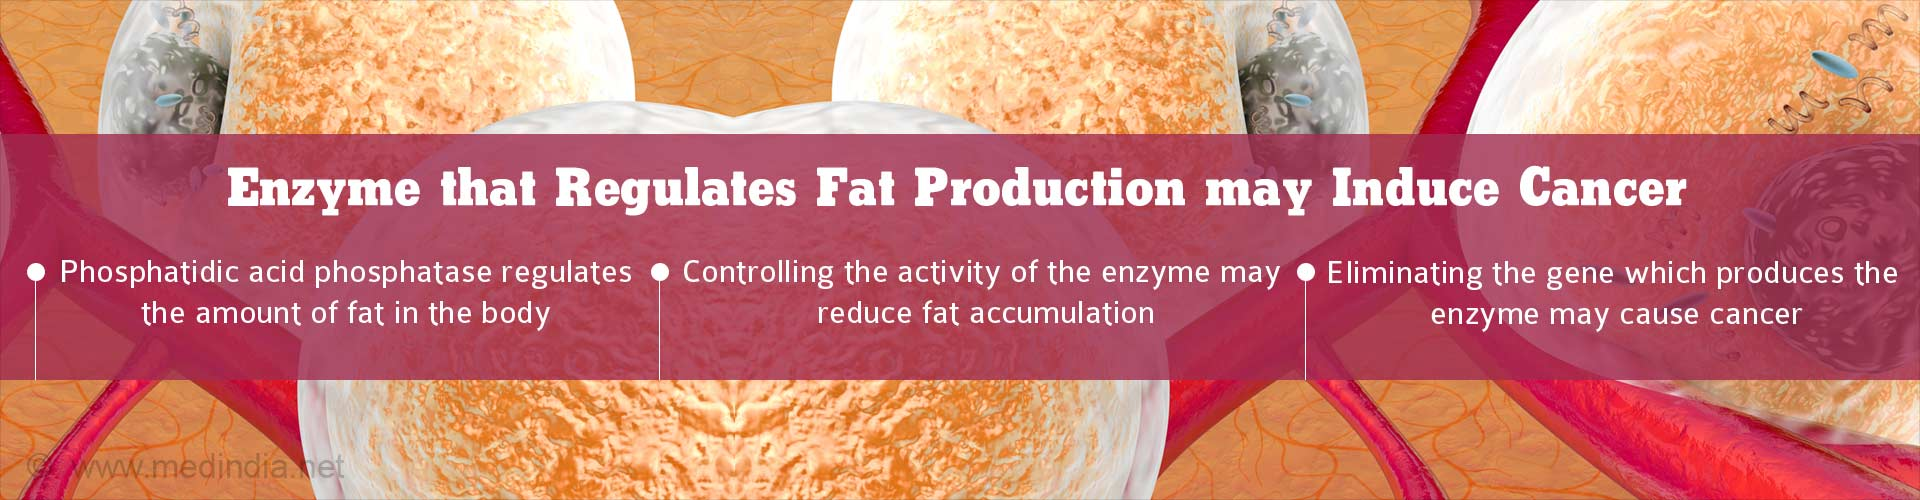 Fat Regulating Enzyme Could Help Prevent Onset of Cancer